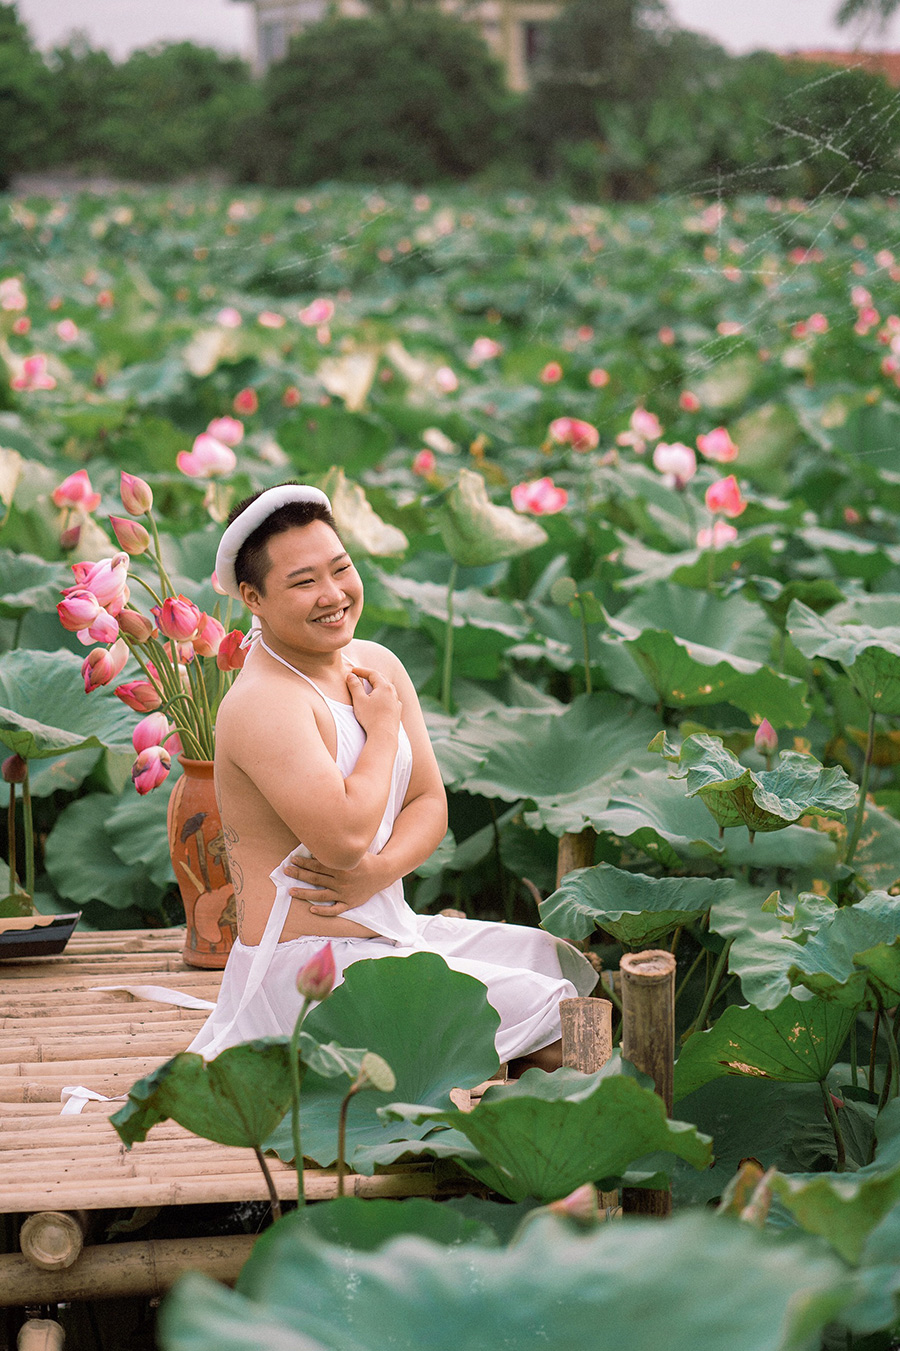 Stirring up the lotus season when wearing a shy white bib, young men make the sisters also have to say hello